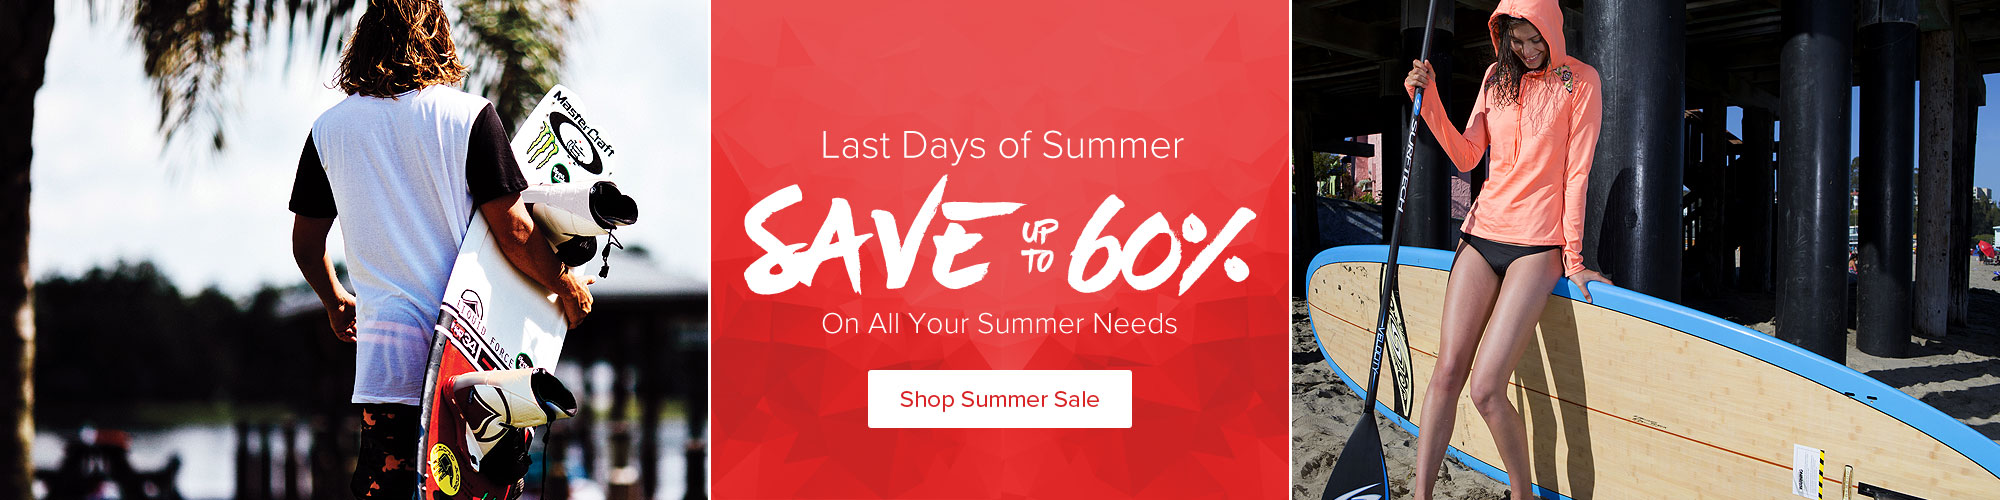 Last Days of Summer - Save Up To 60% on All Your Summer Needs